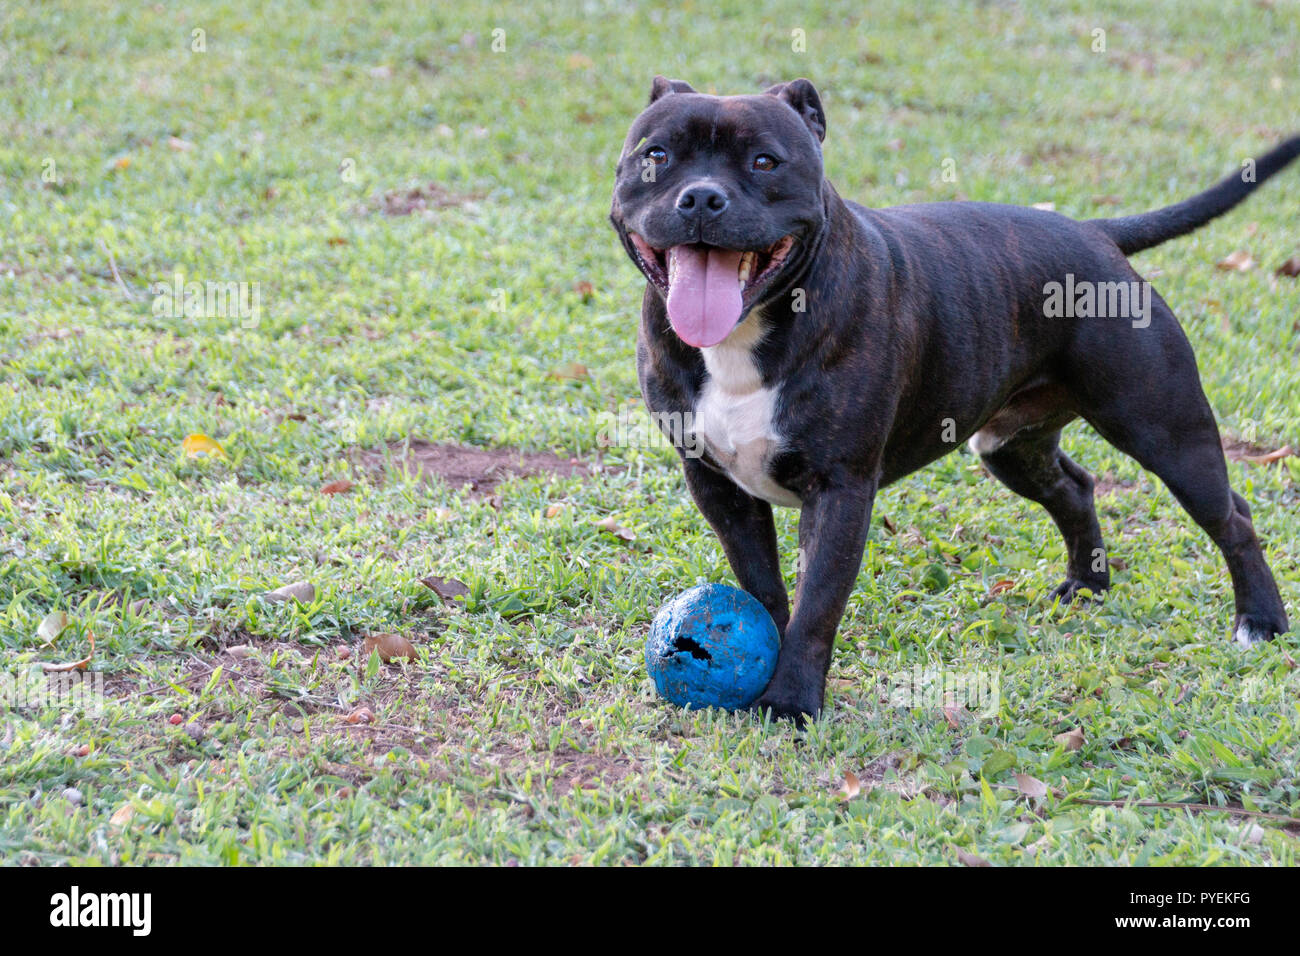 A close up view of a black and white dog playing with his blue chew toy in the garden - Stock Image